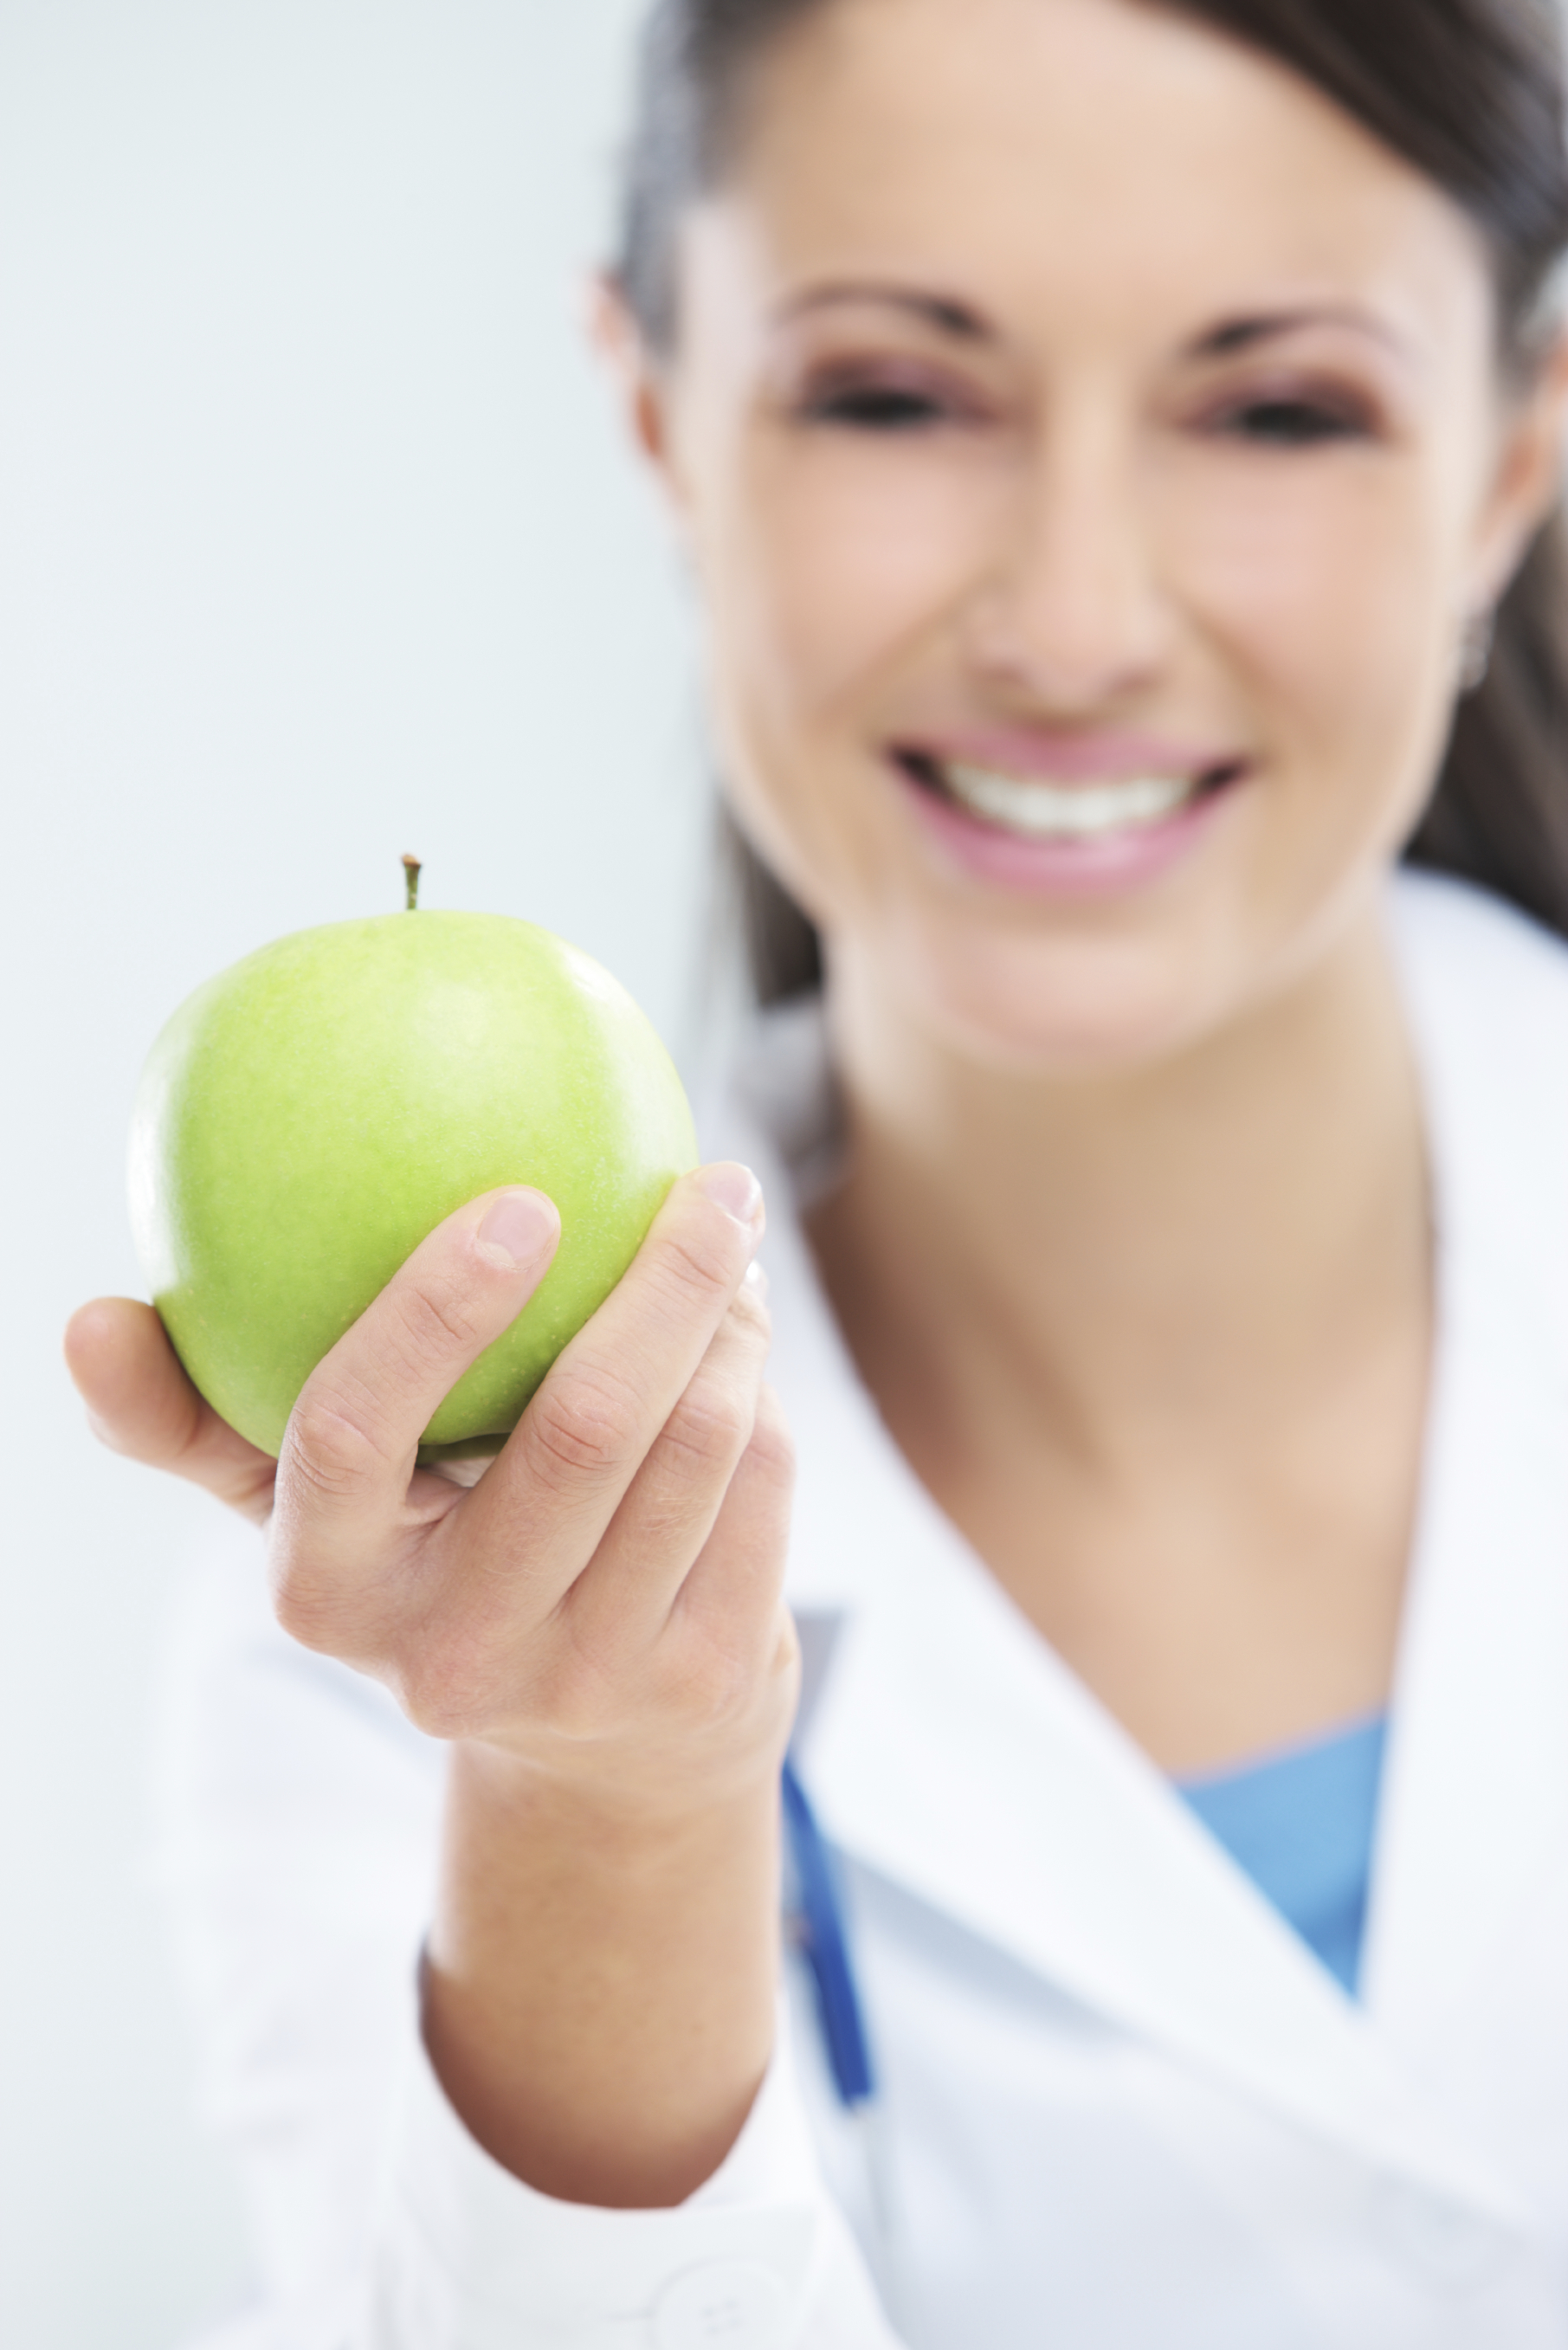 registered dietitian | live healthy s.c., Human body